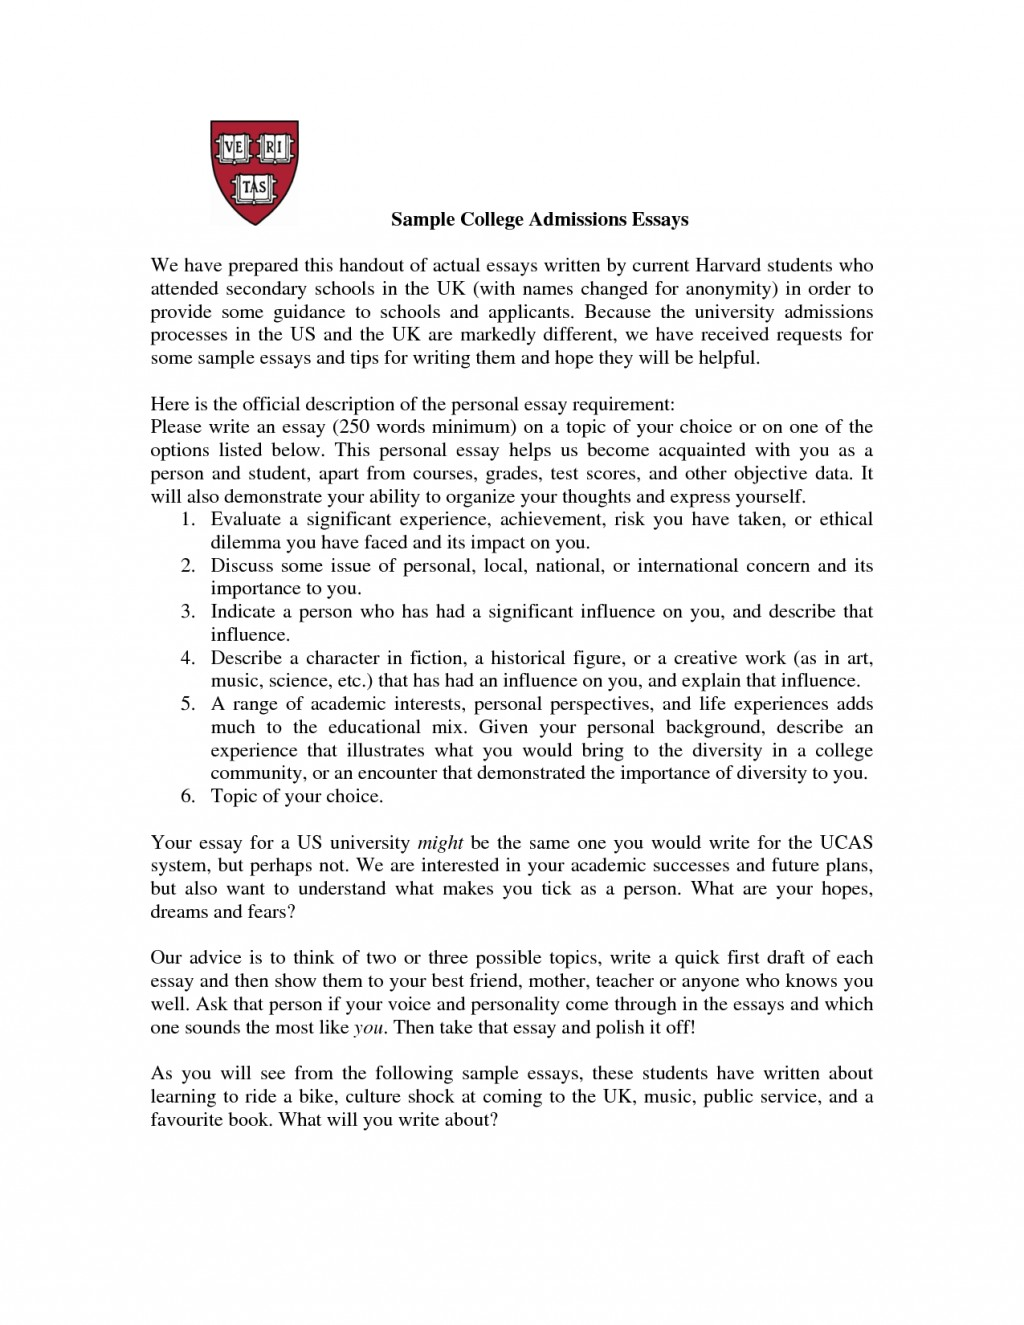 001 Admission Essay Sample Example Impressive Mba Samples Pdf Free For Graduate School Large